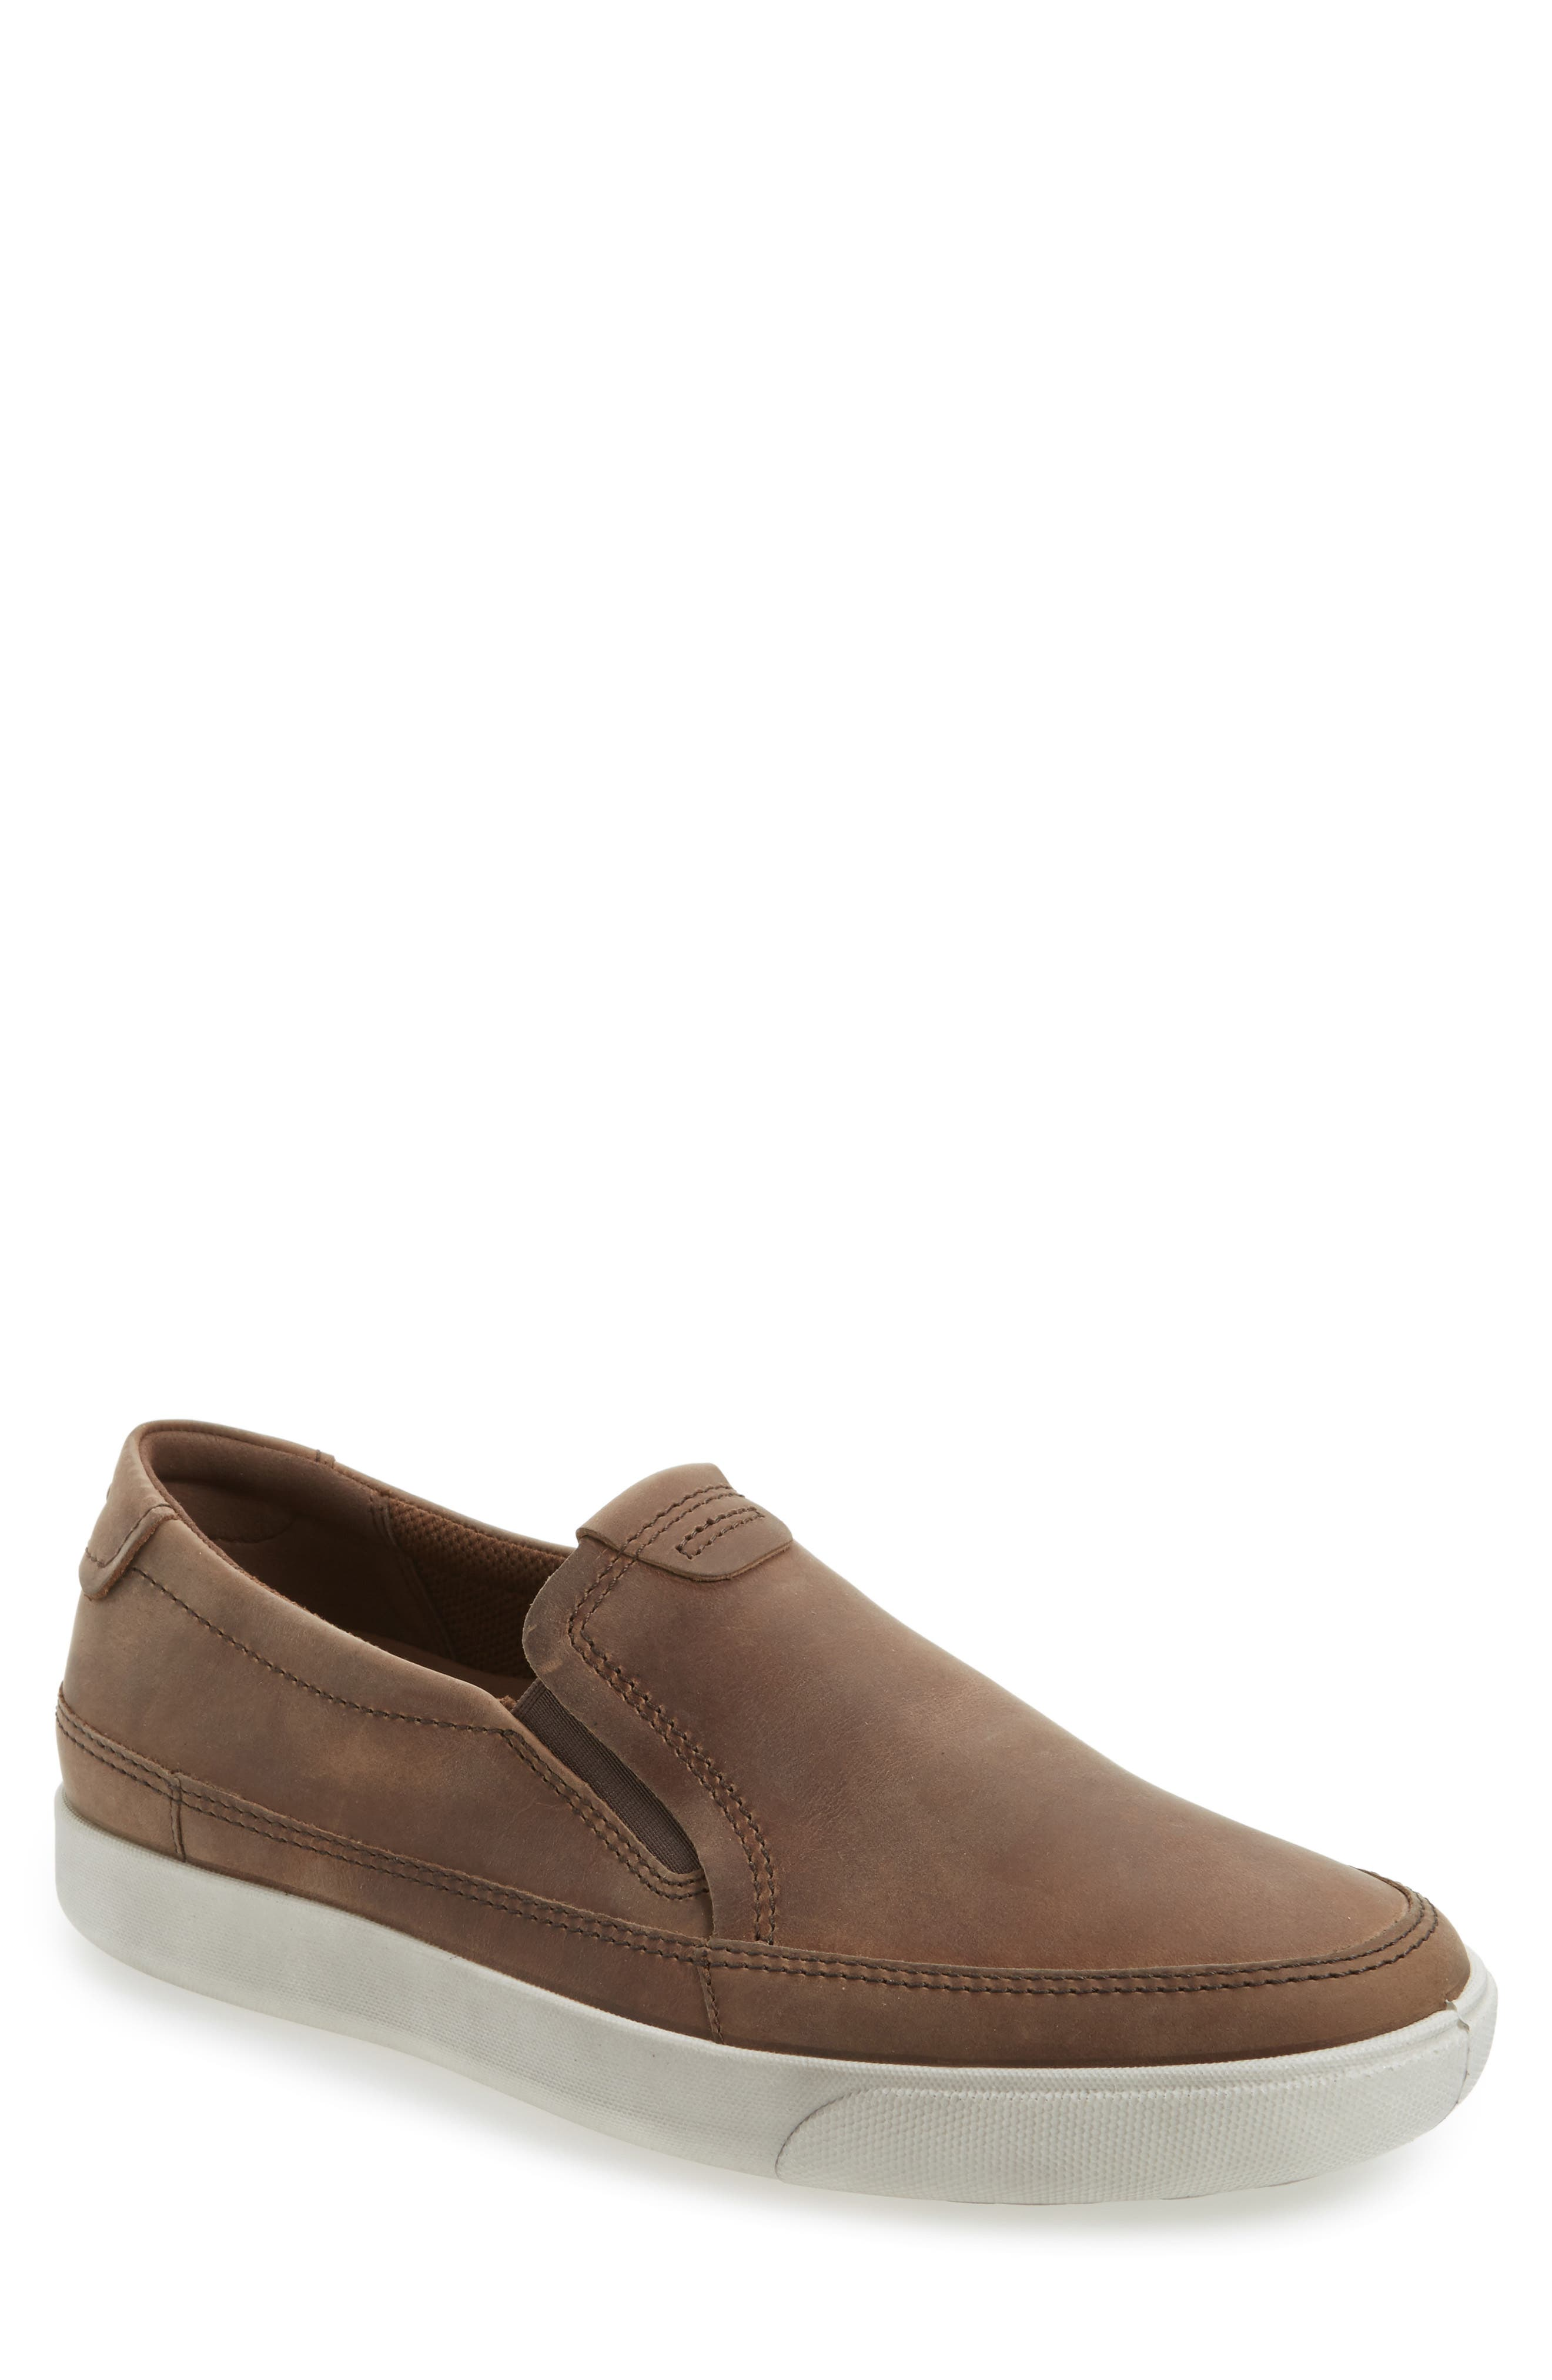 'Gary' Slip-On,                         Main,                         color, COCOA BROWN LEATHER